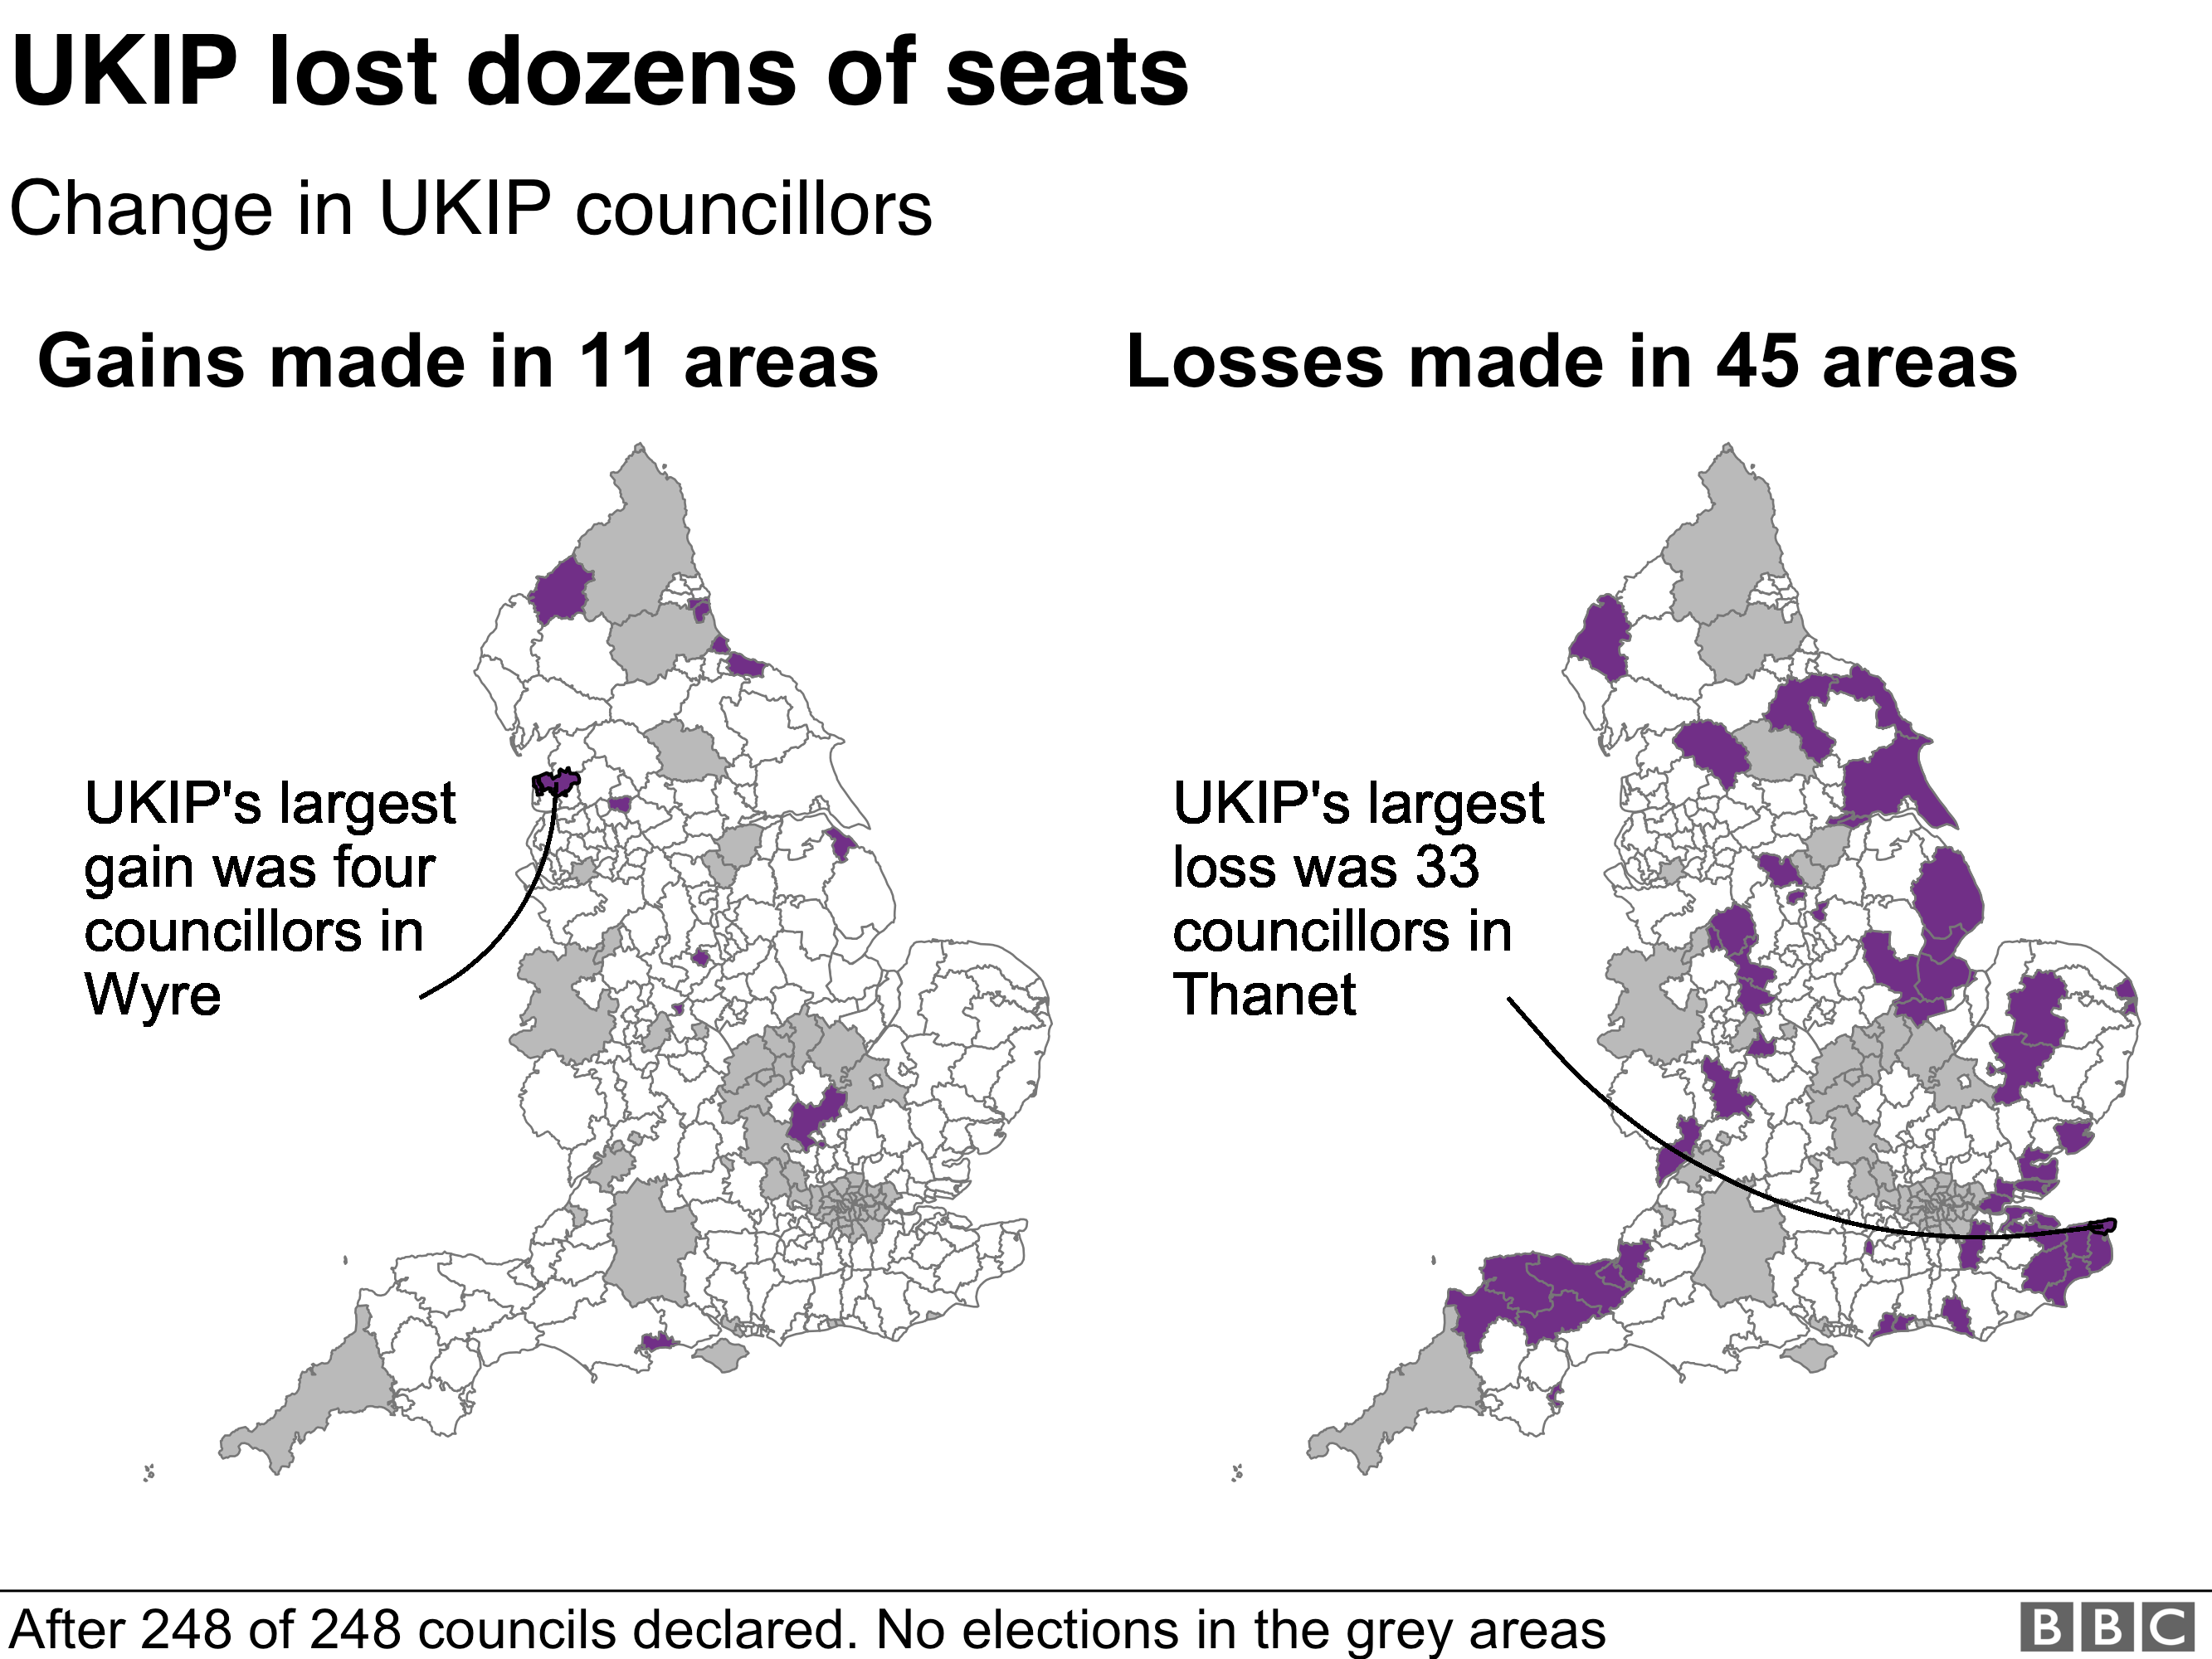 UKIP only made gains in 11 areas